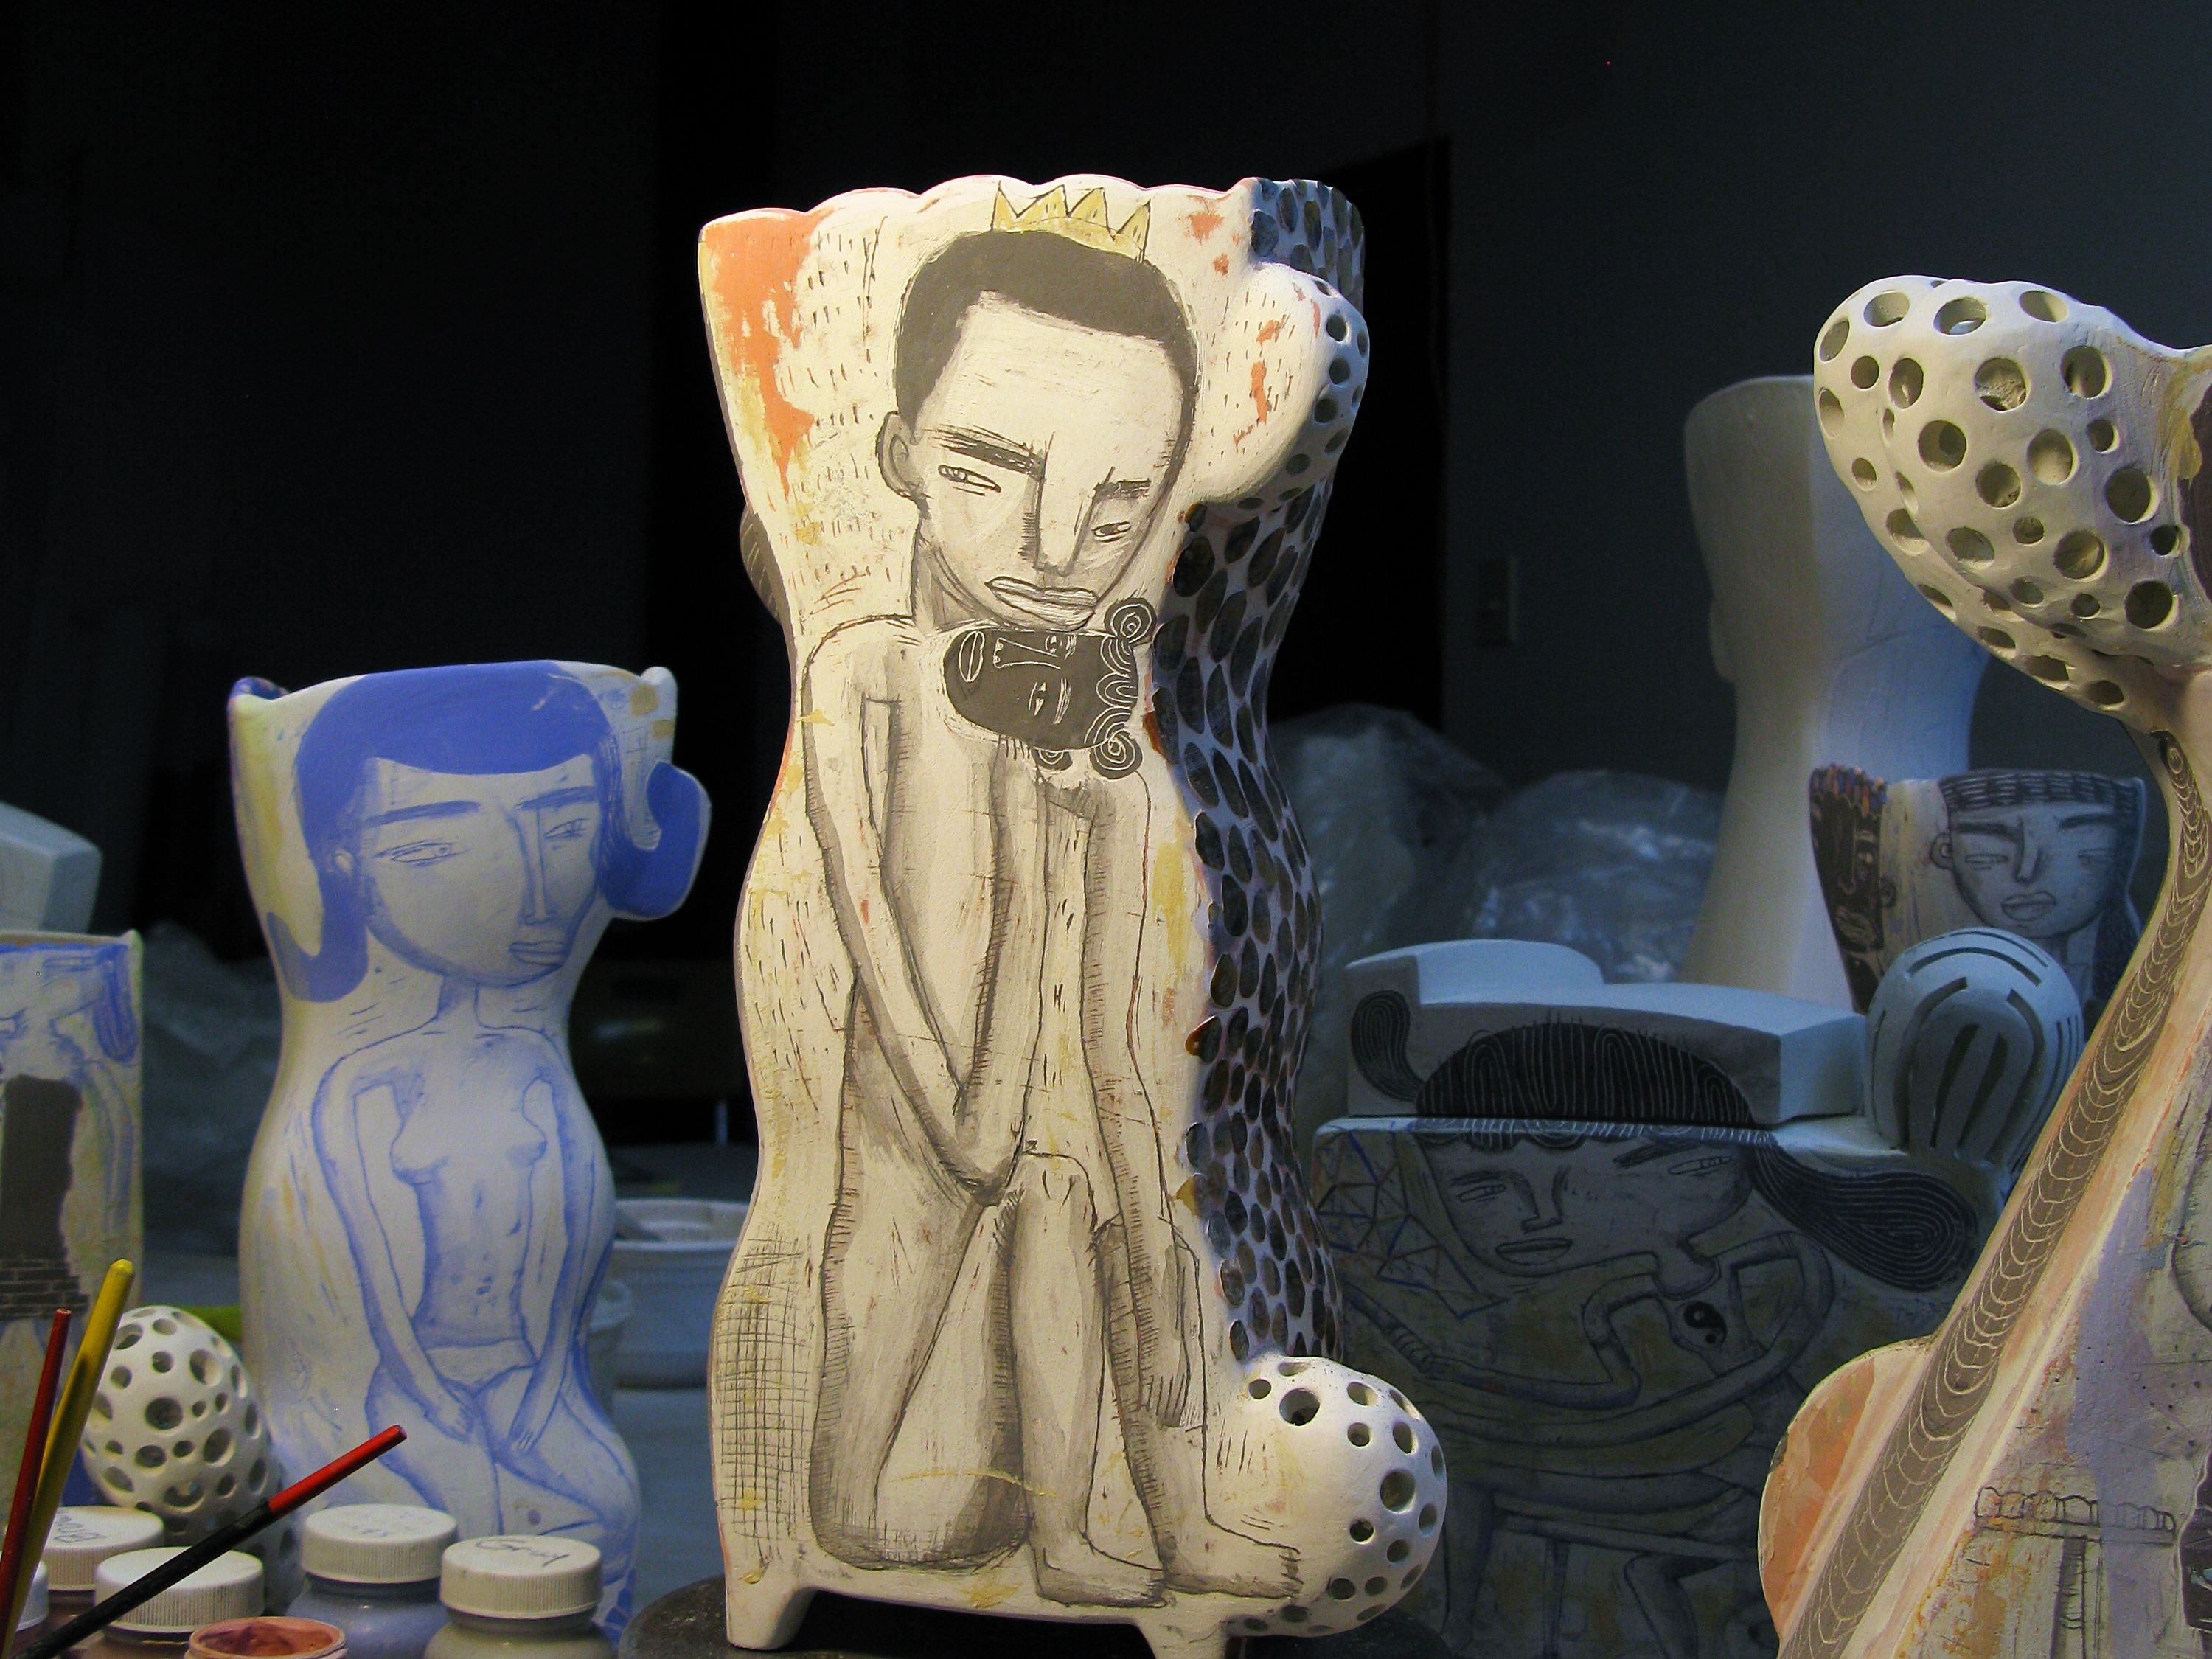 Studio shot of two ceramic vessels with hand drawn illustrations of a man and women